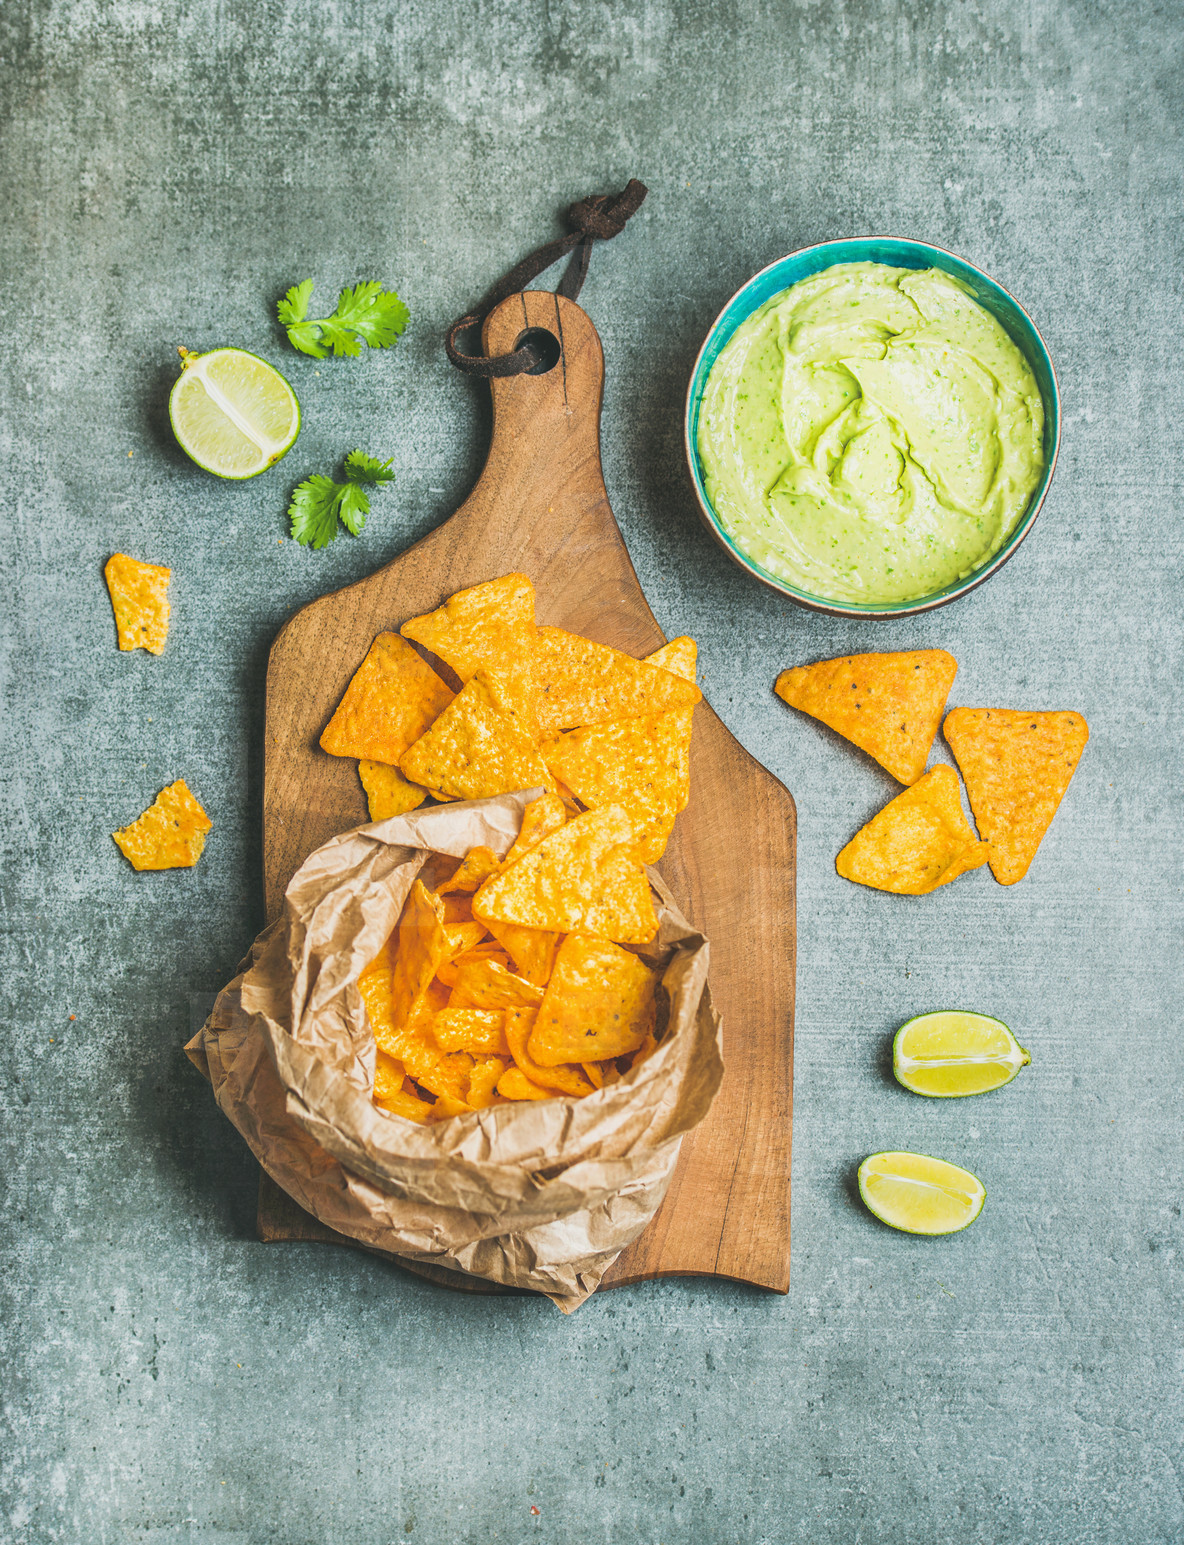 Mexican corn chips and fresh guacamole sauce on wooden board